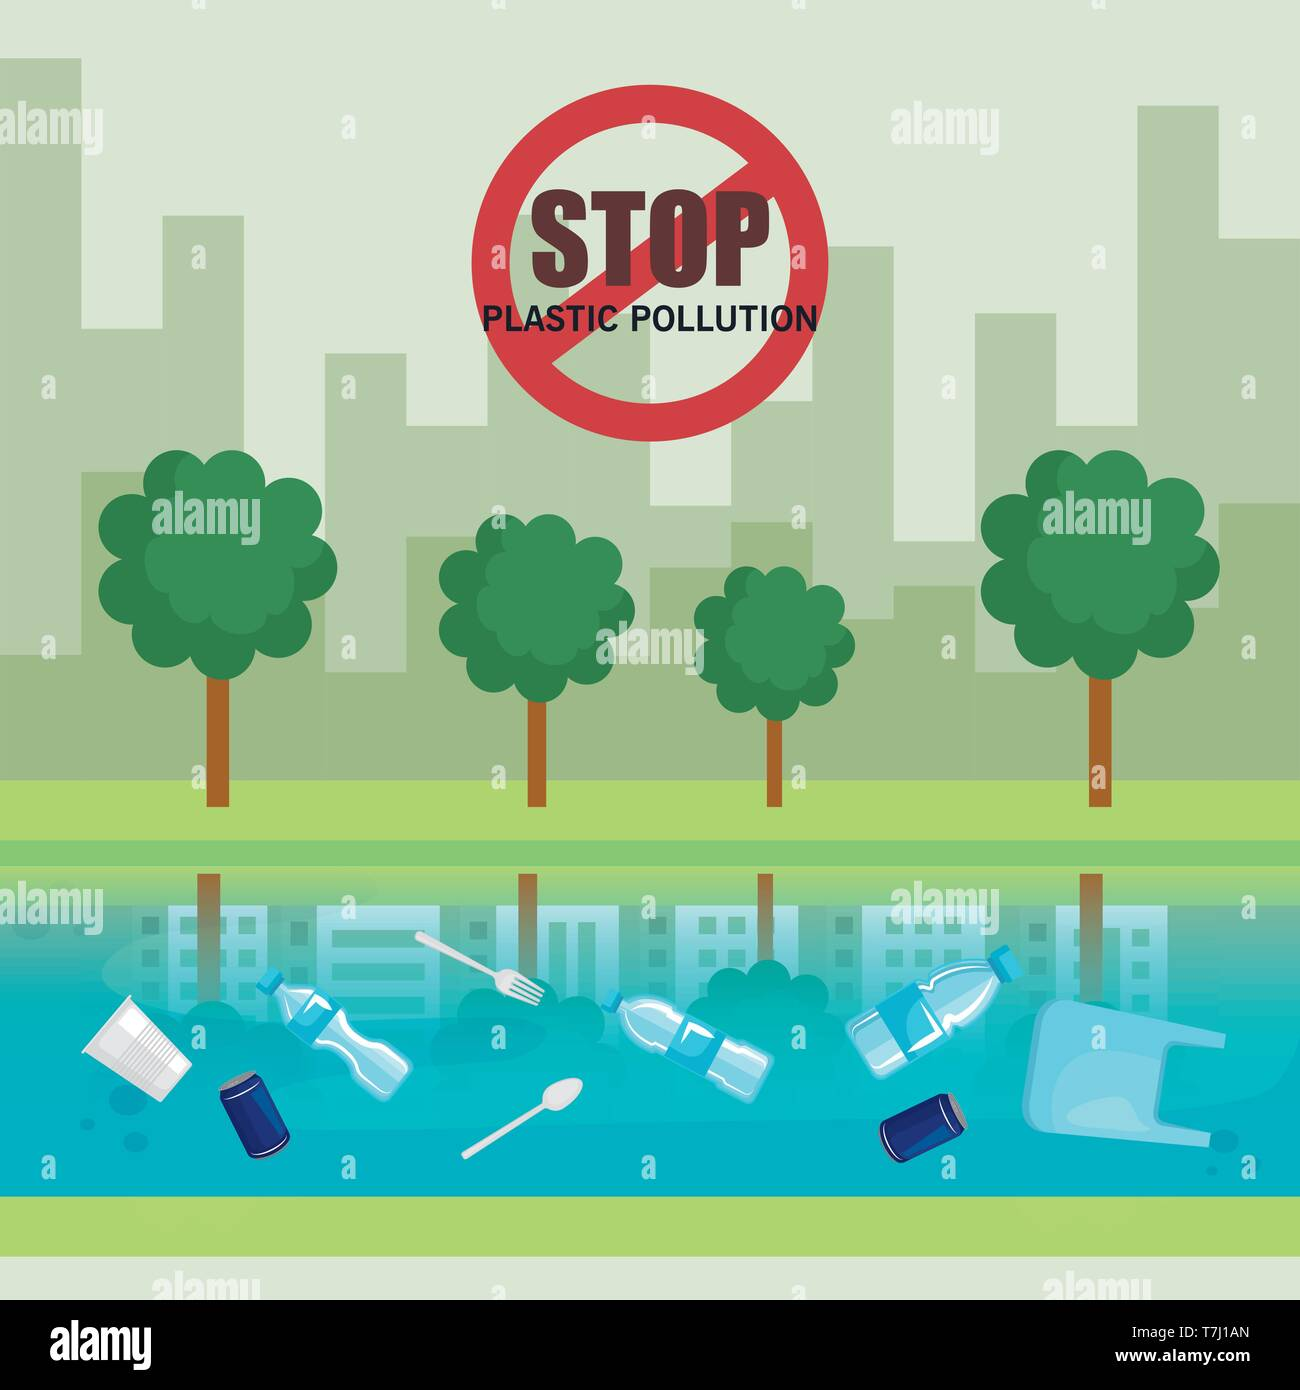 plastics waste pollution in the river and city - Stock Vector